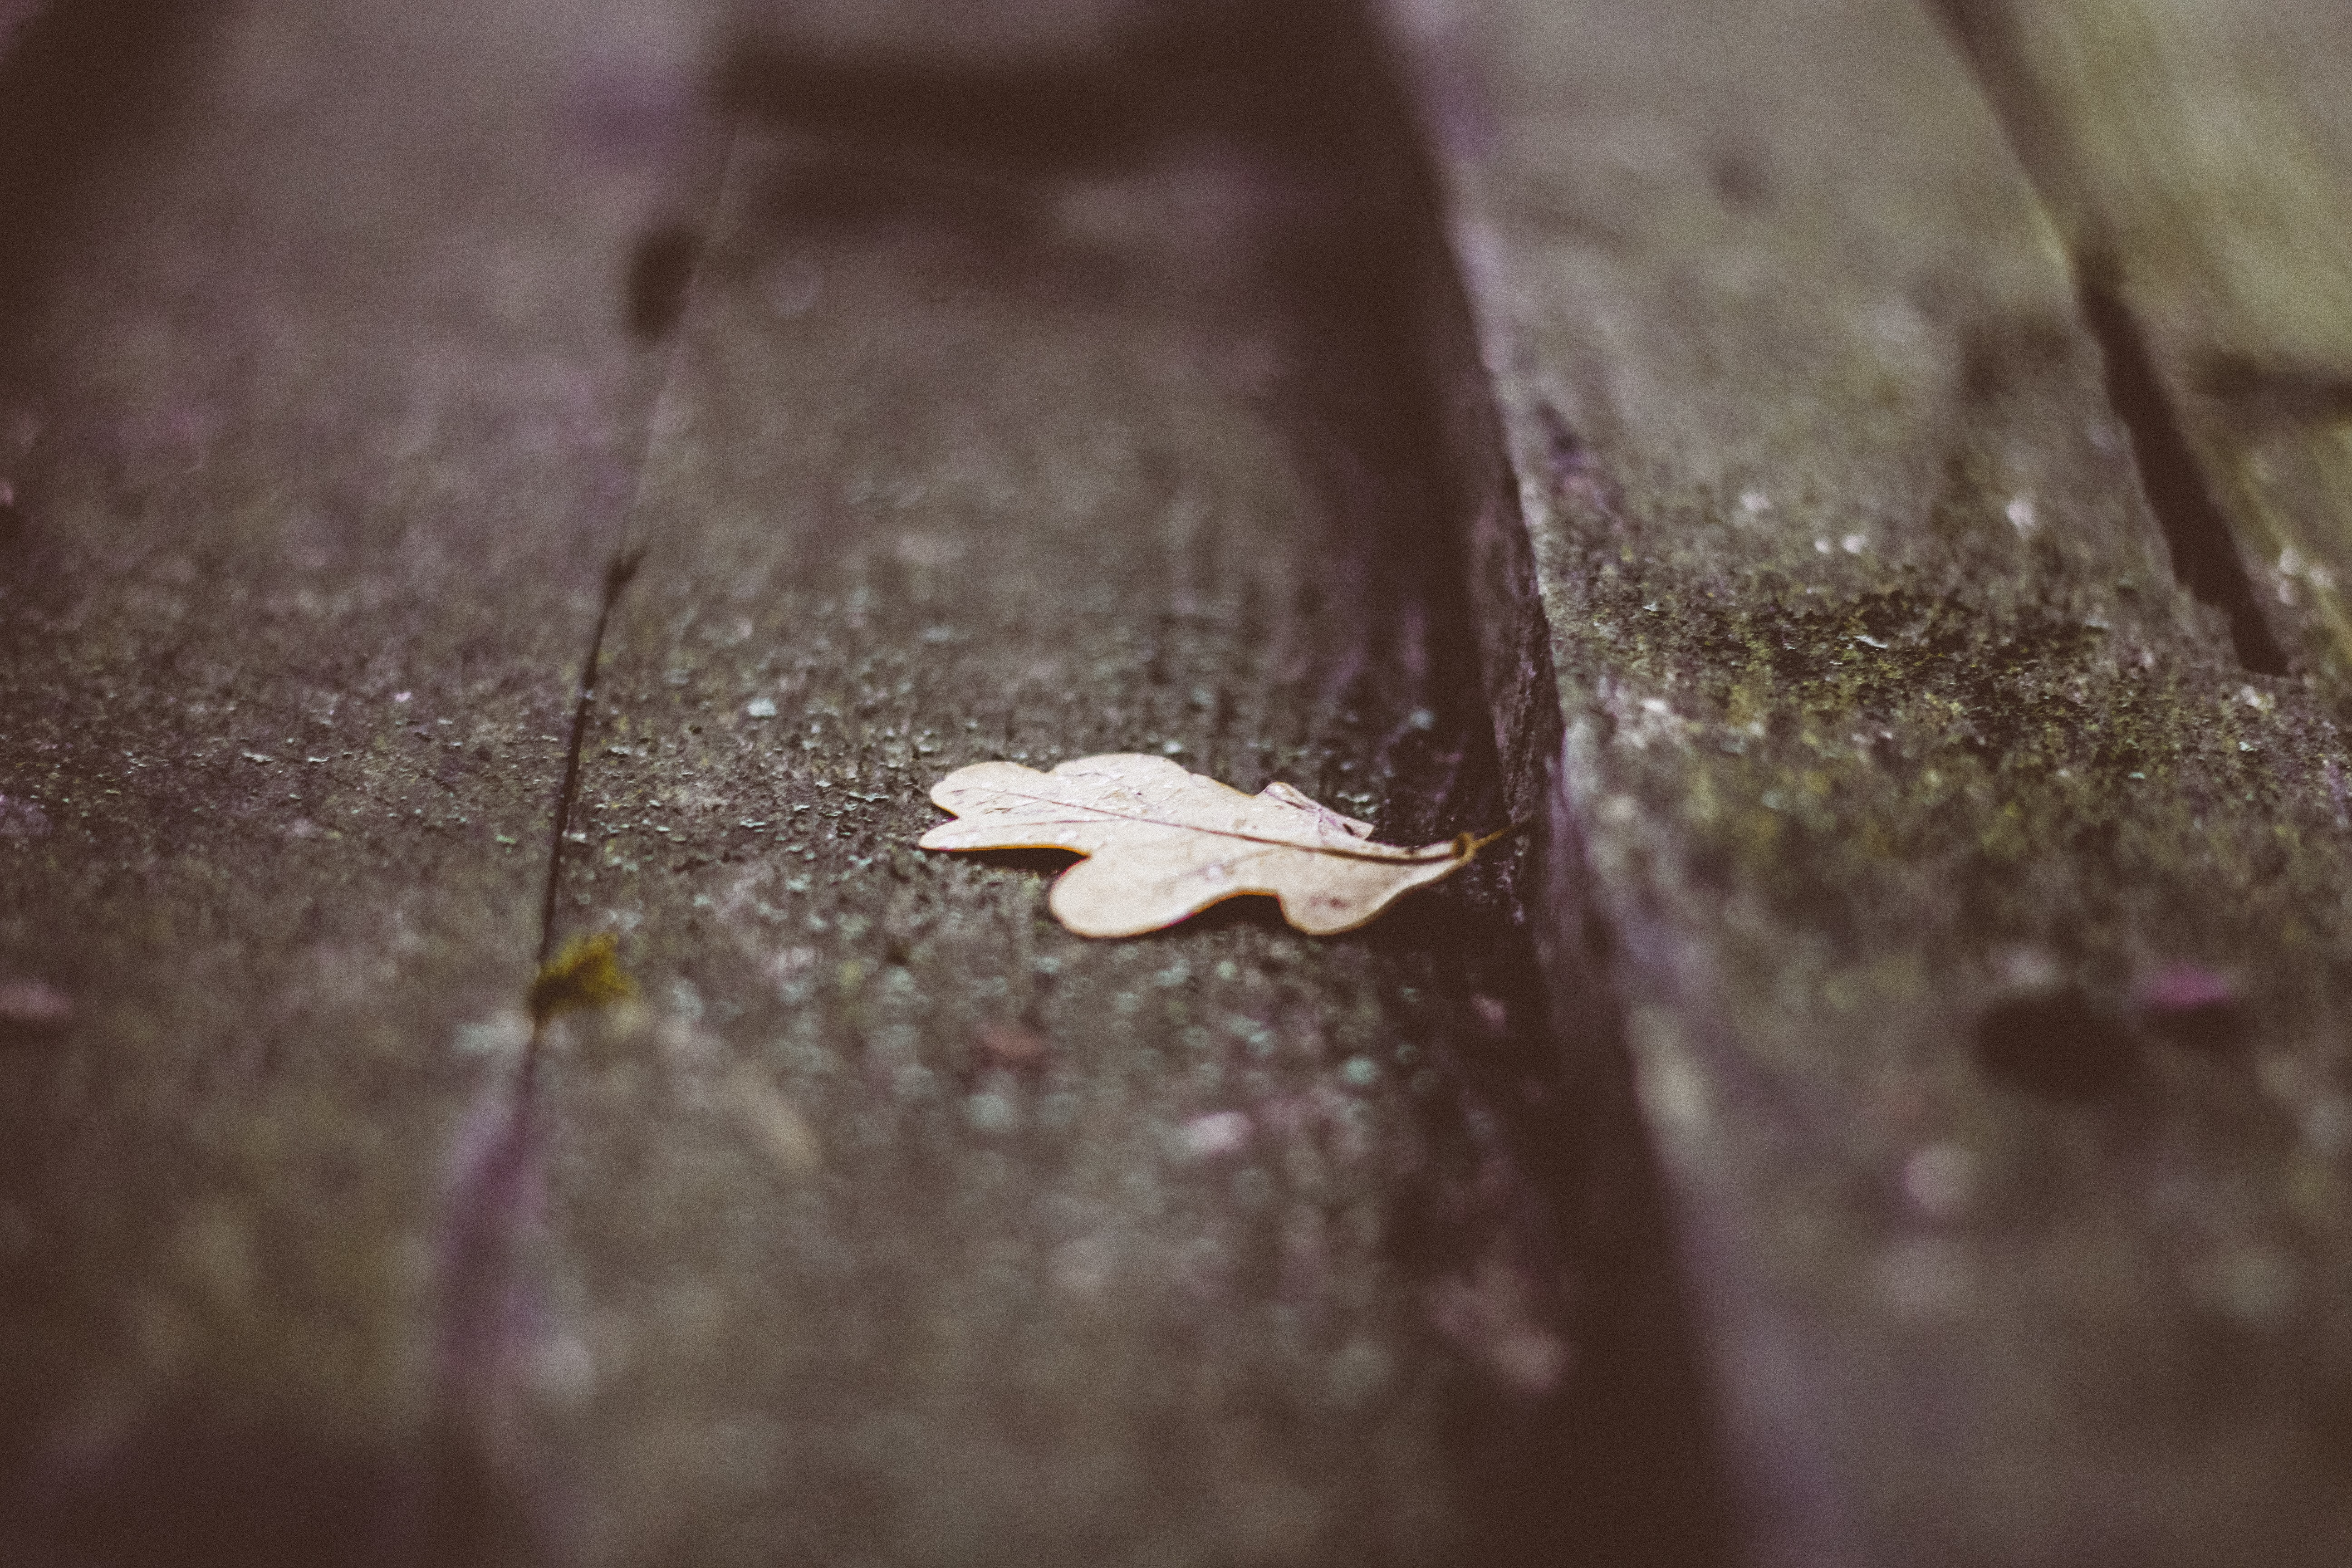 white leaf on wooden surface